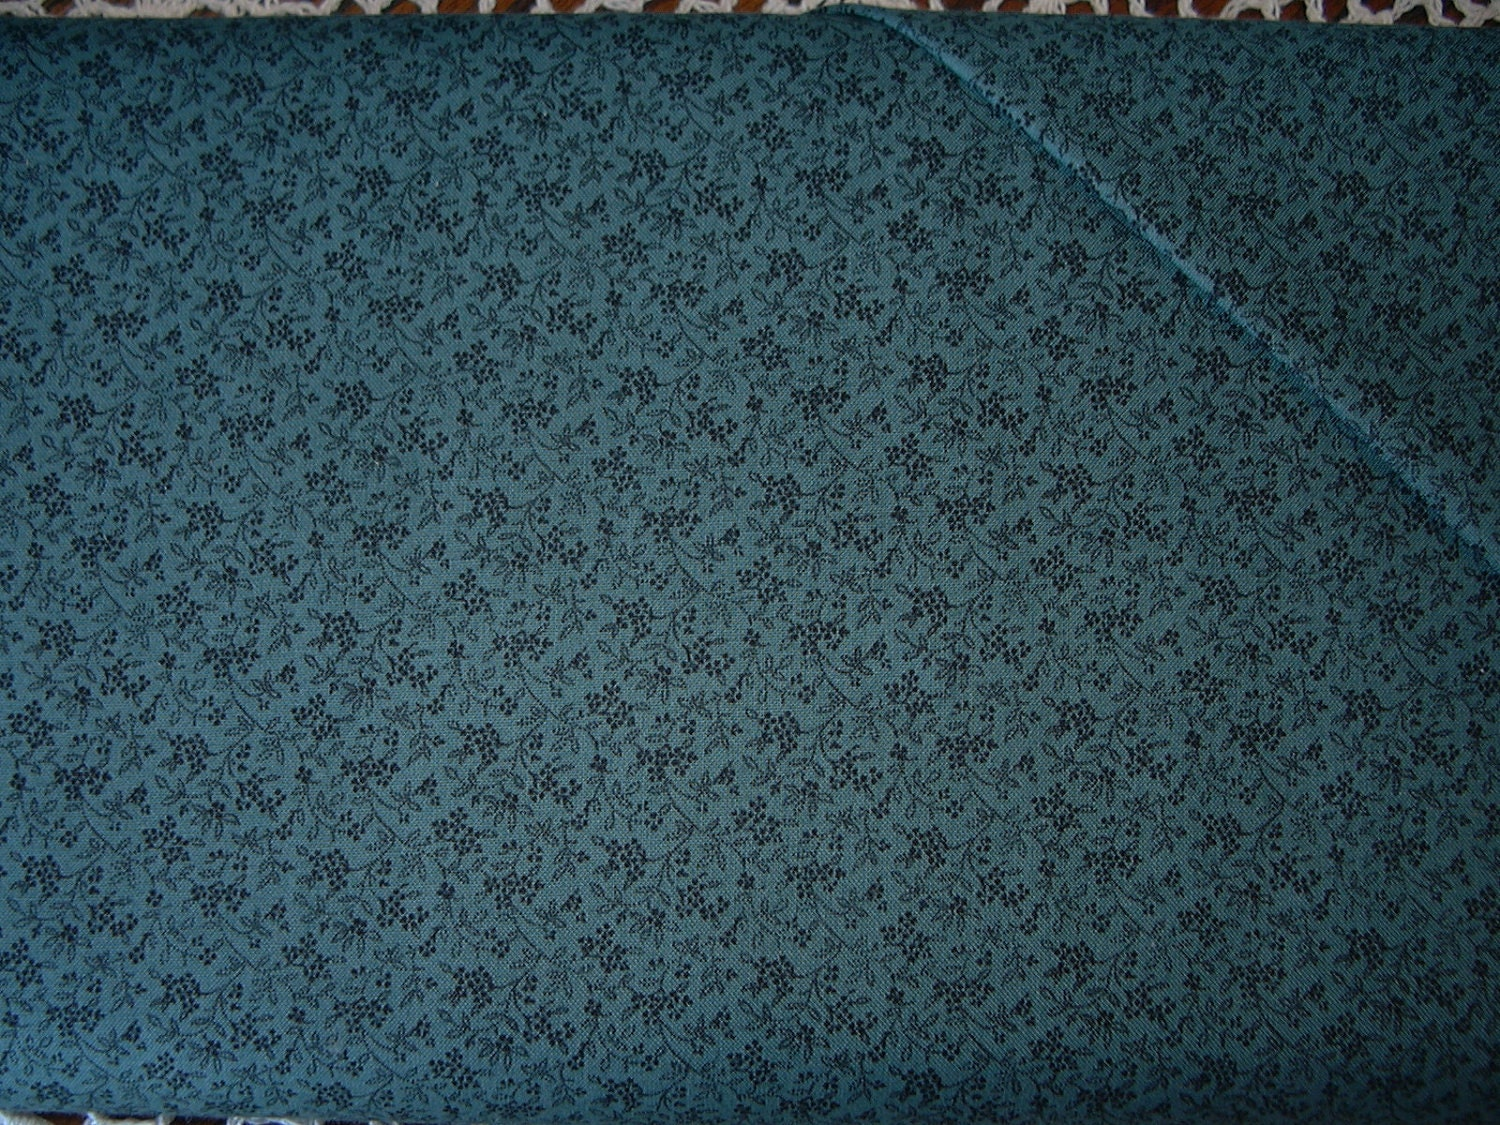 Quilted Fabric Blue Dark Blue Quilt...